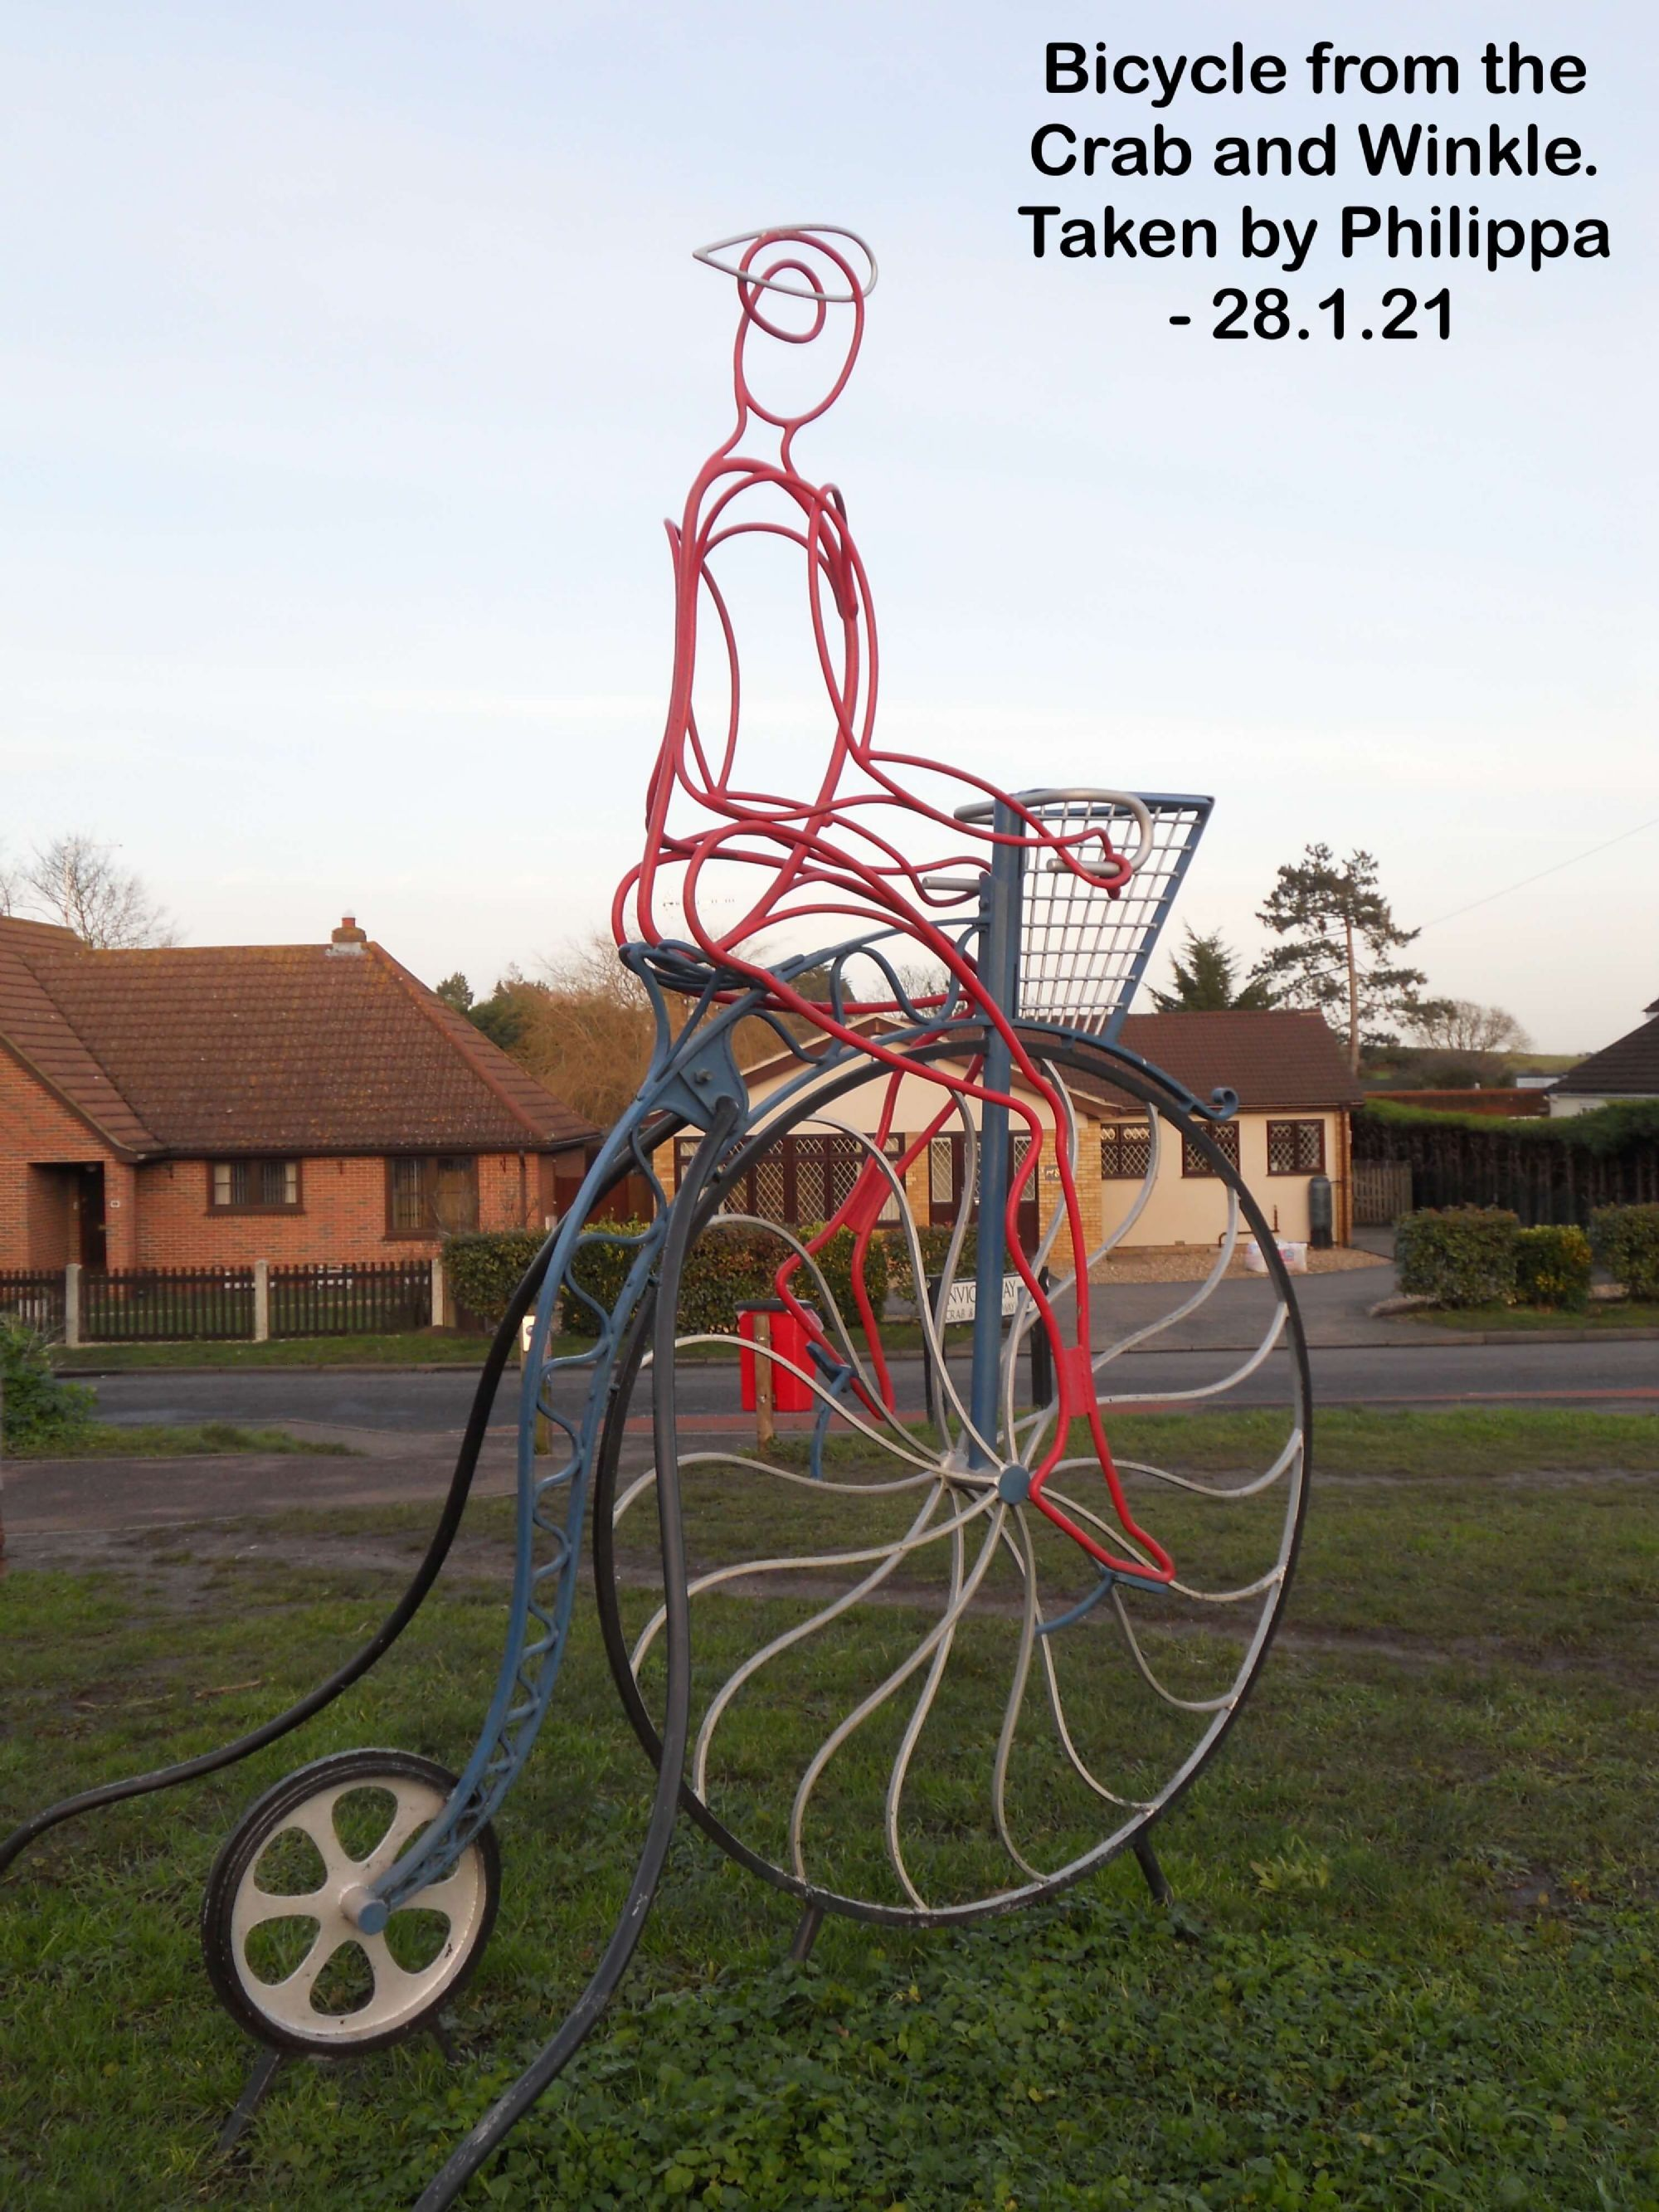 Bicycle from the Crab and Winkle.